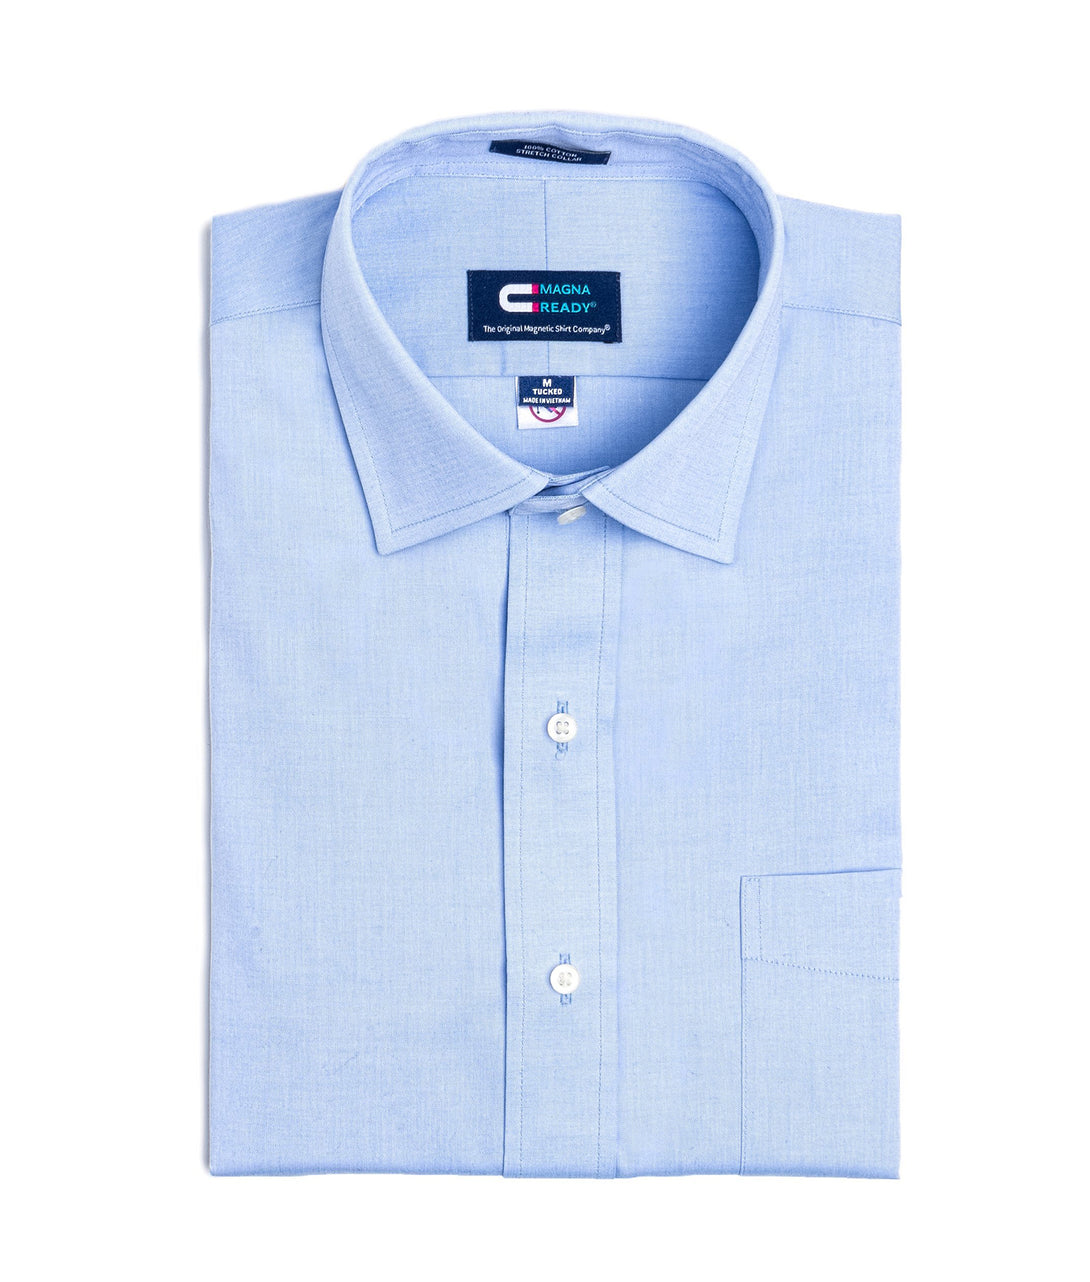 Blue Pinpoint Long Sleeve Dress Shirt with Magnetic Closures | JUNIPERunltd